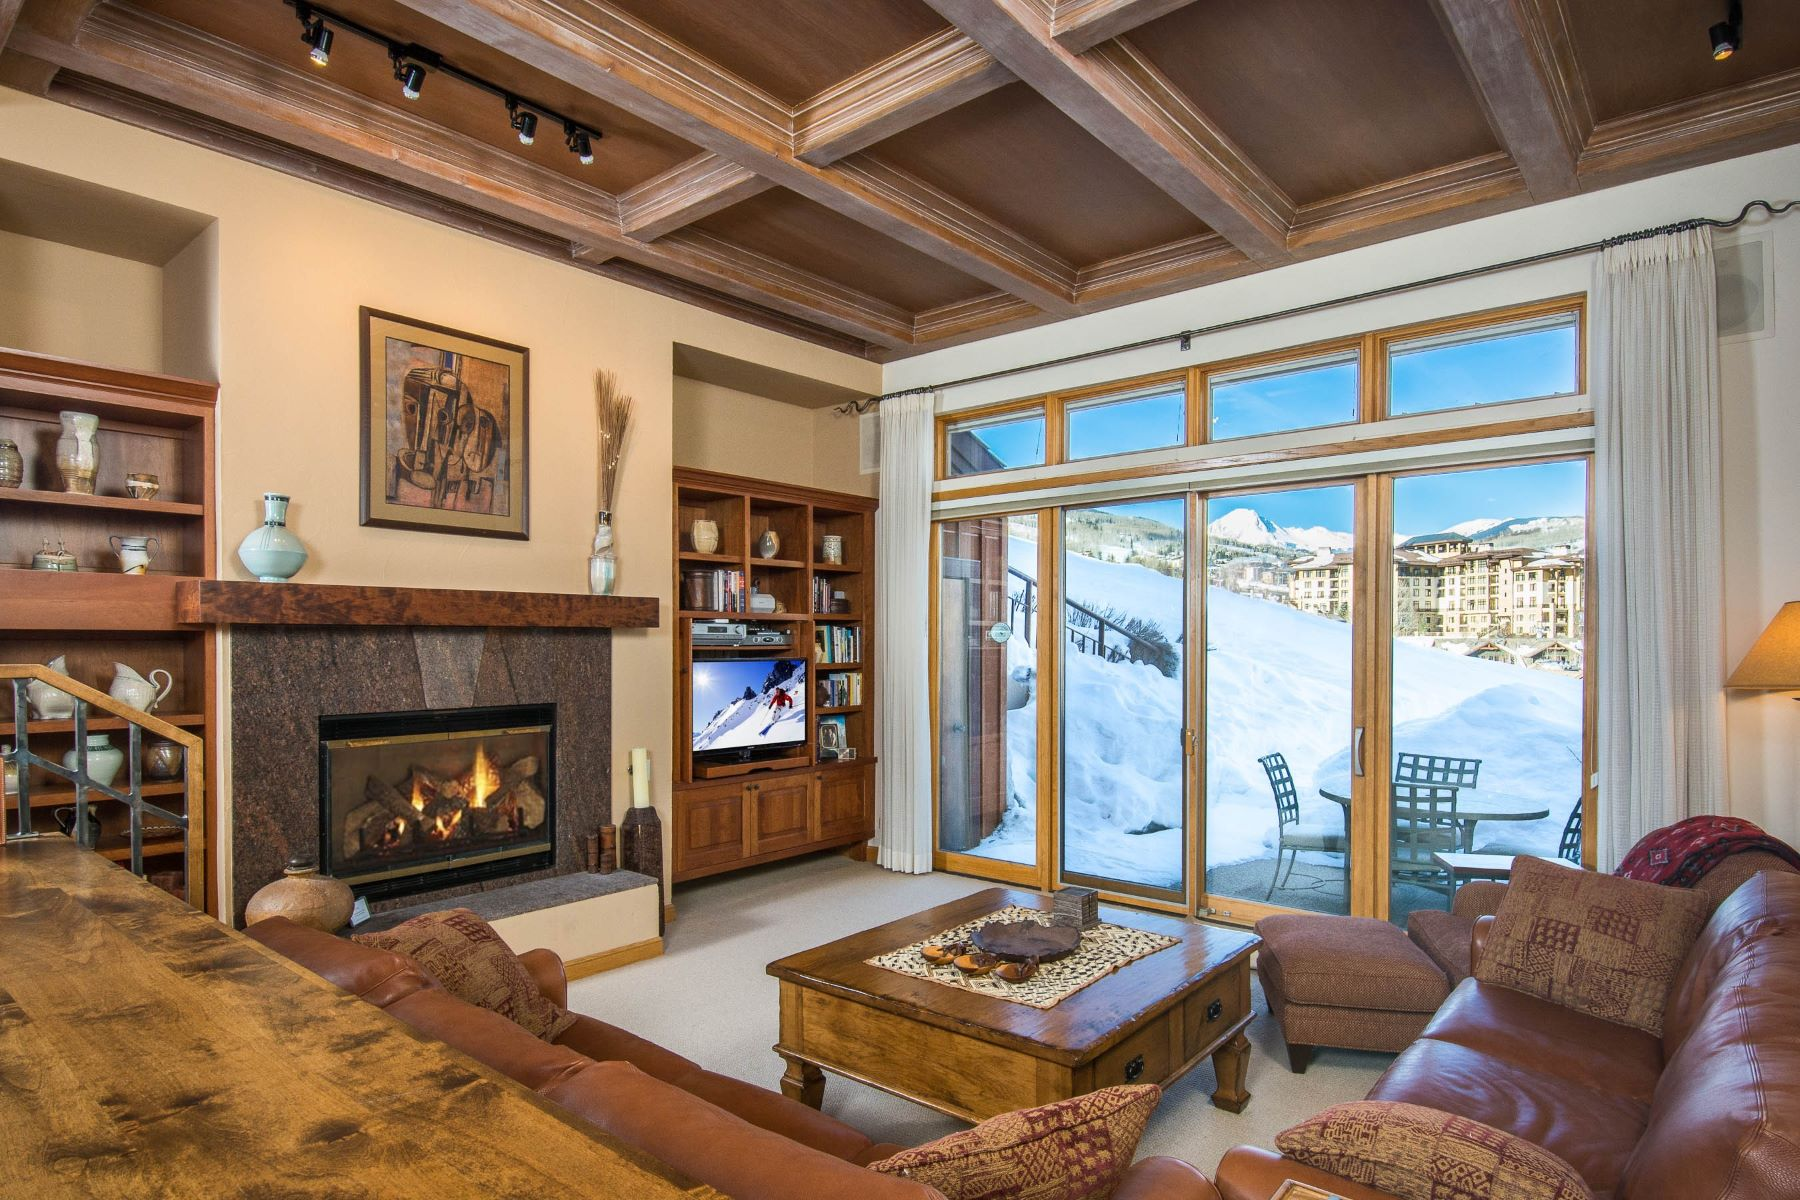 Copropriété pour l Vente à Spacious 3 Bedroom Ski Retreat 770 Ridge Road, Unit 5 Snowmass Village, Colorado, 81615 États-Unis